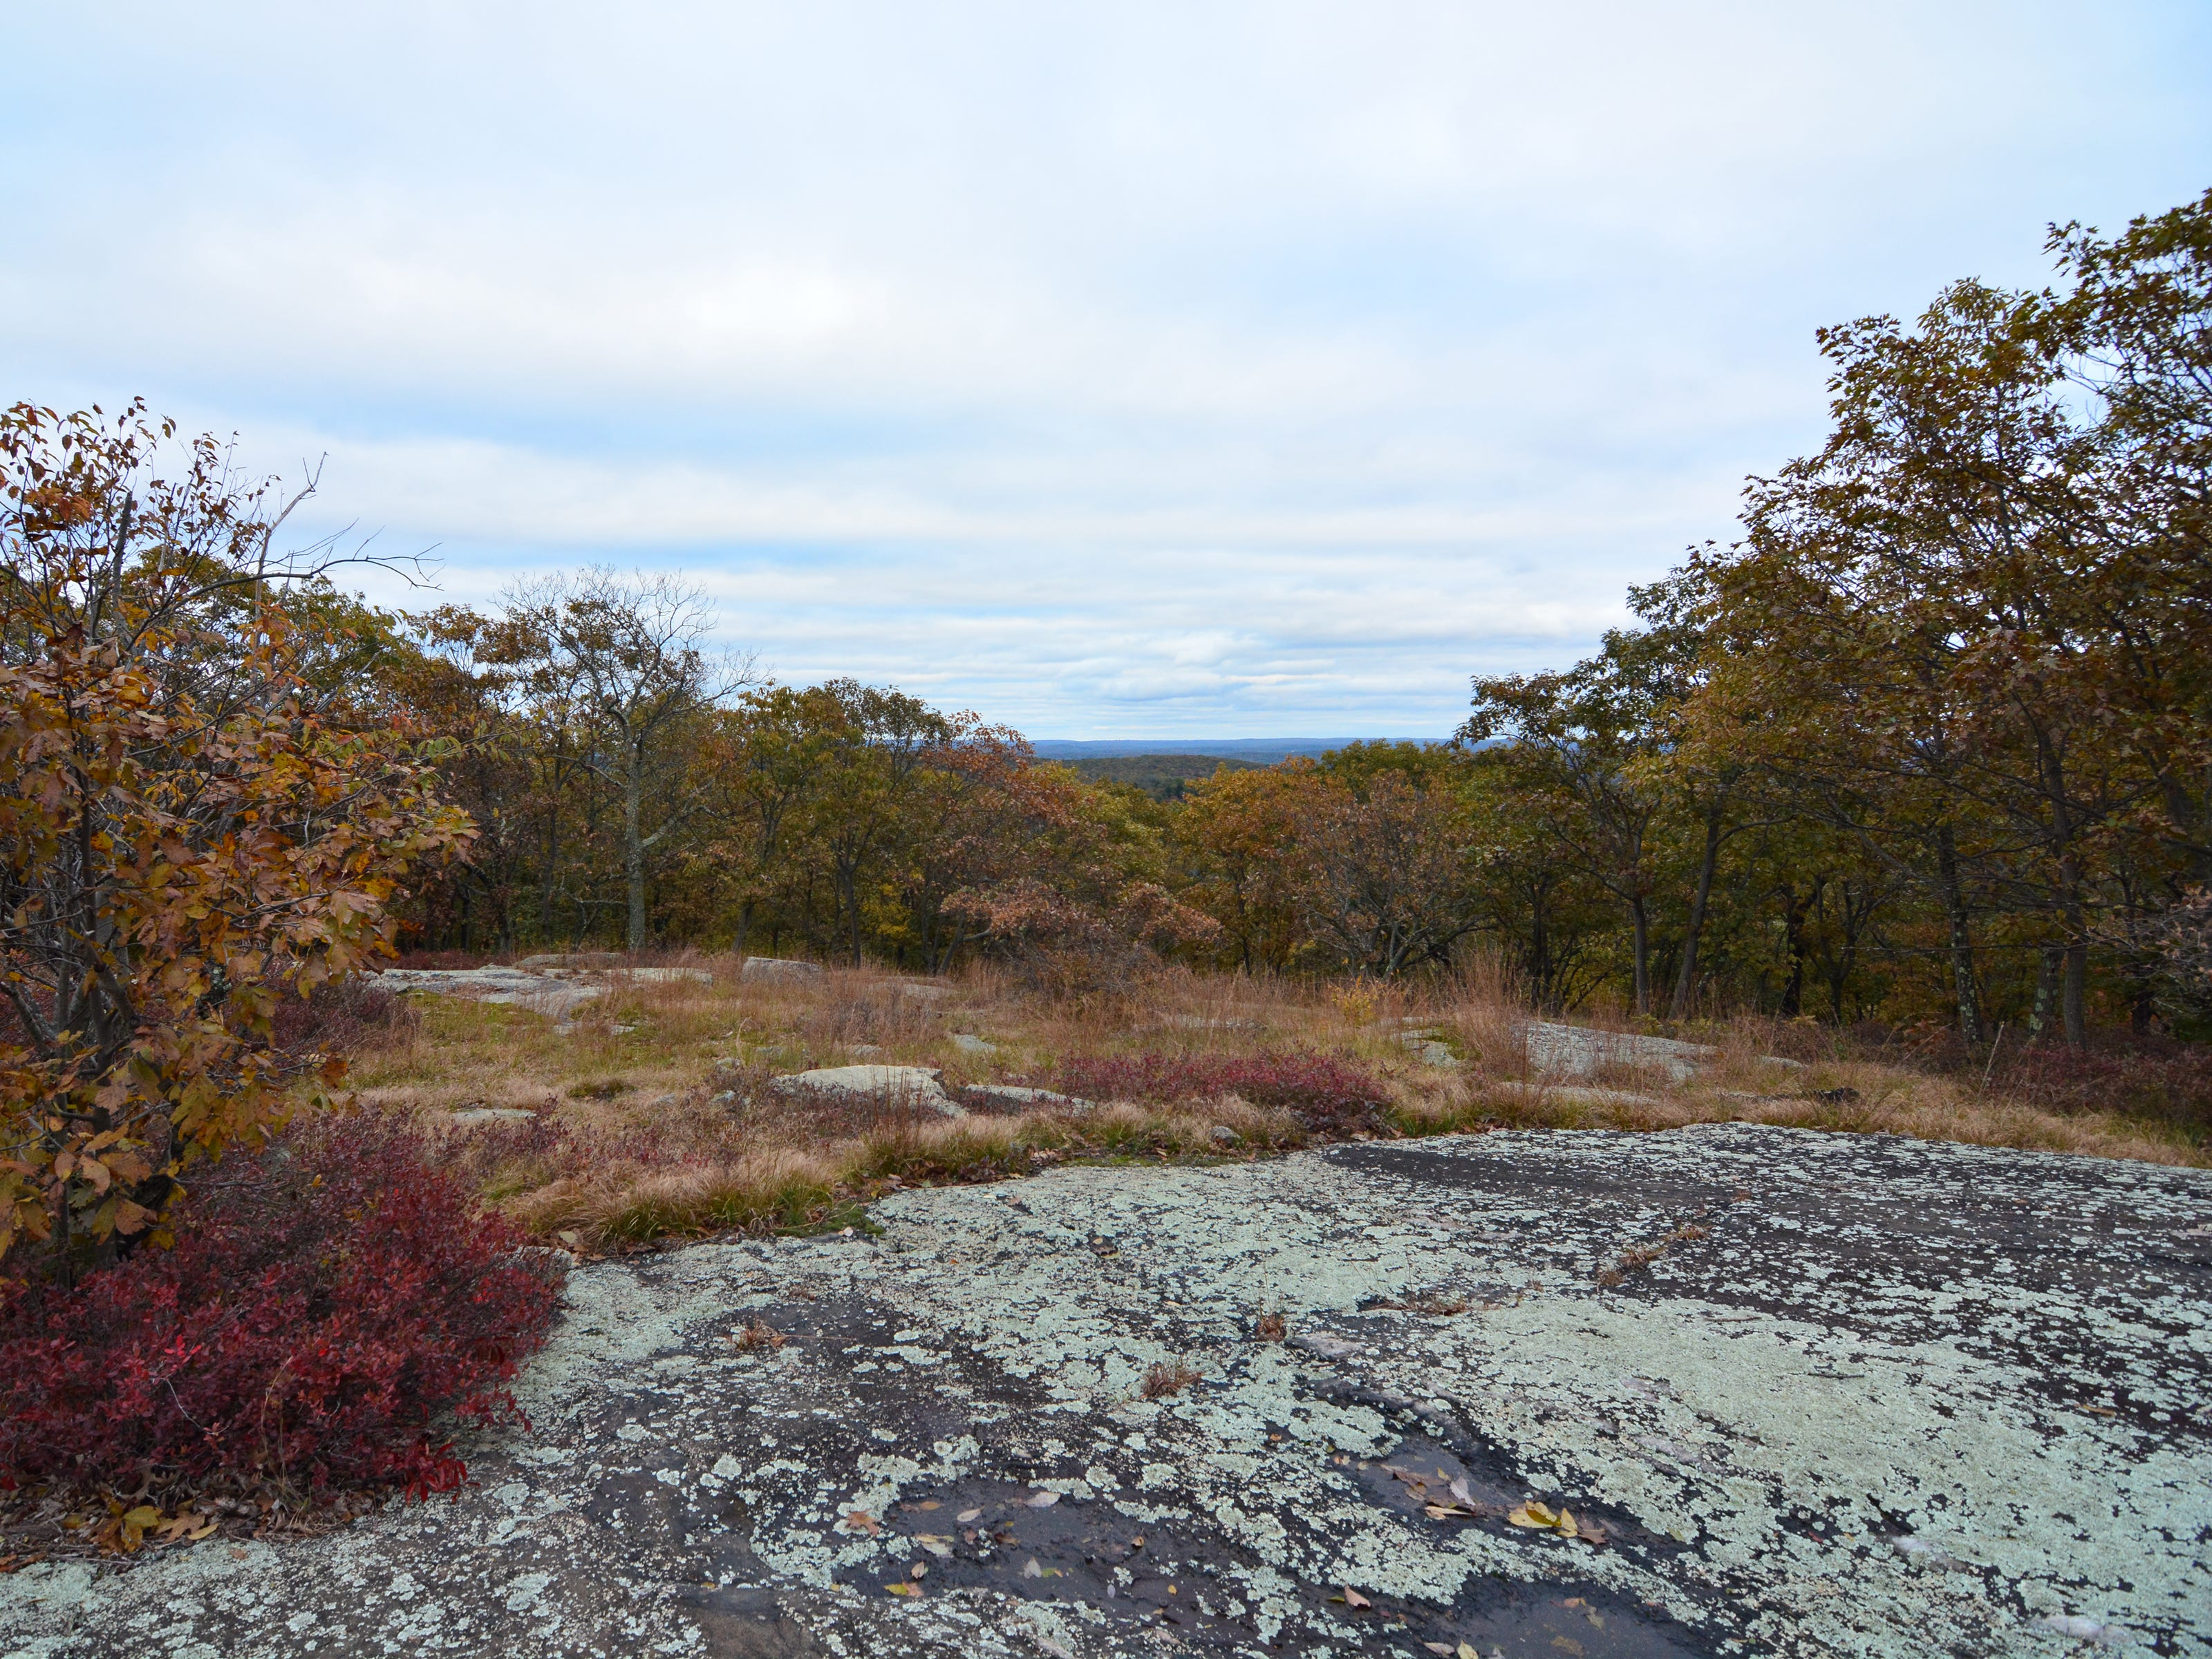 Turkey Mountain an easy hike that rewards with scenic views from the top